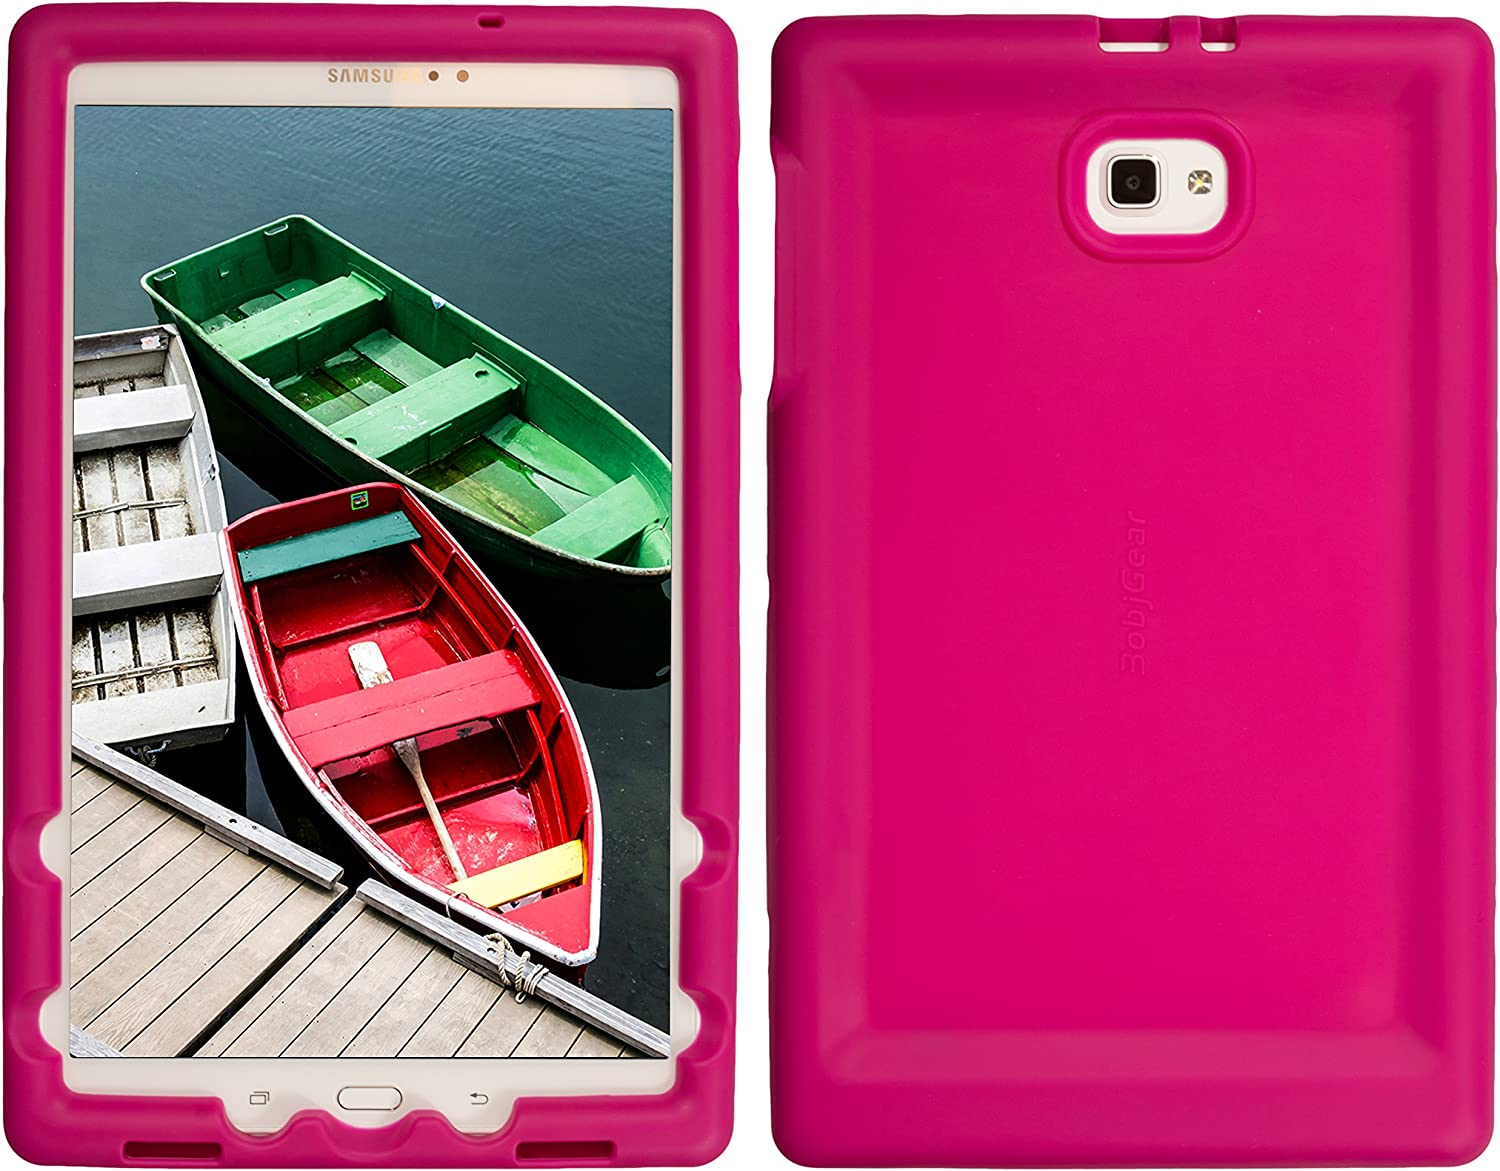 Bobj Rugged Case for Samsung Galaxy Tab A 10.1, SM-T580, SM-T585, (Does not fit S-Pen Models) - BobjGear Custom Fit - Patented Venting - Sound Amplification - BobjBounces Kid Friendly (Raspberry)